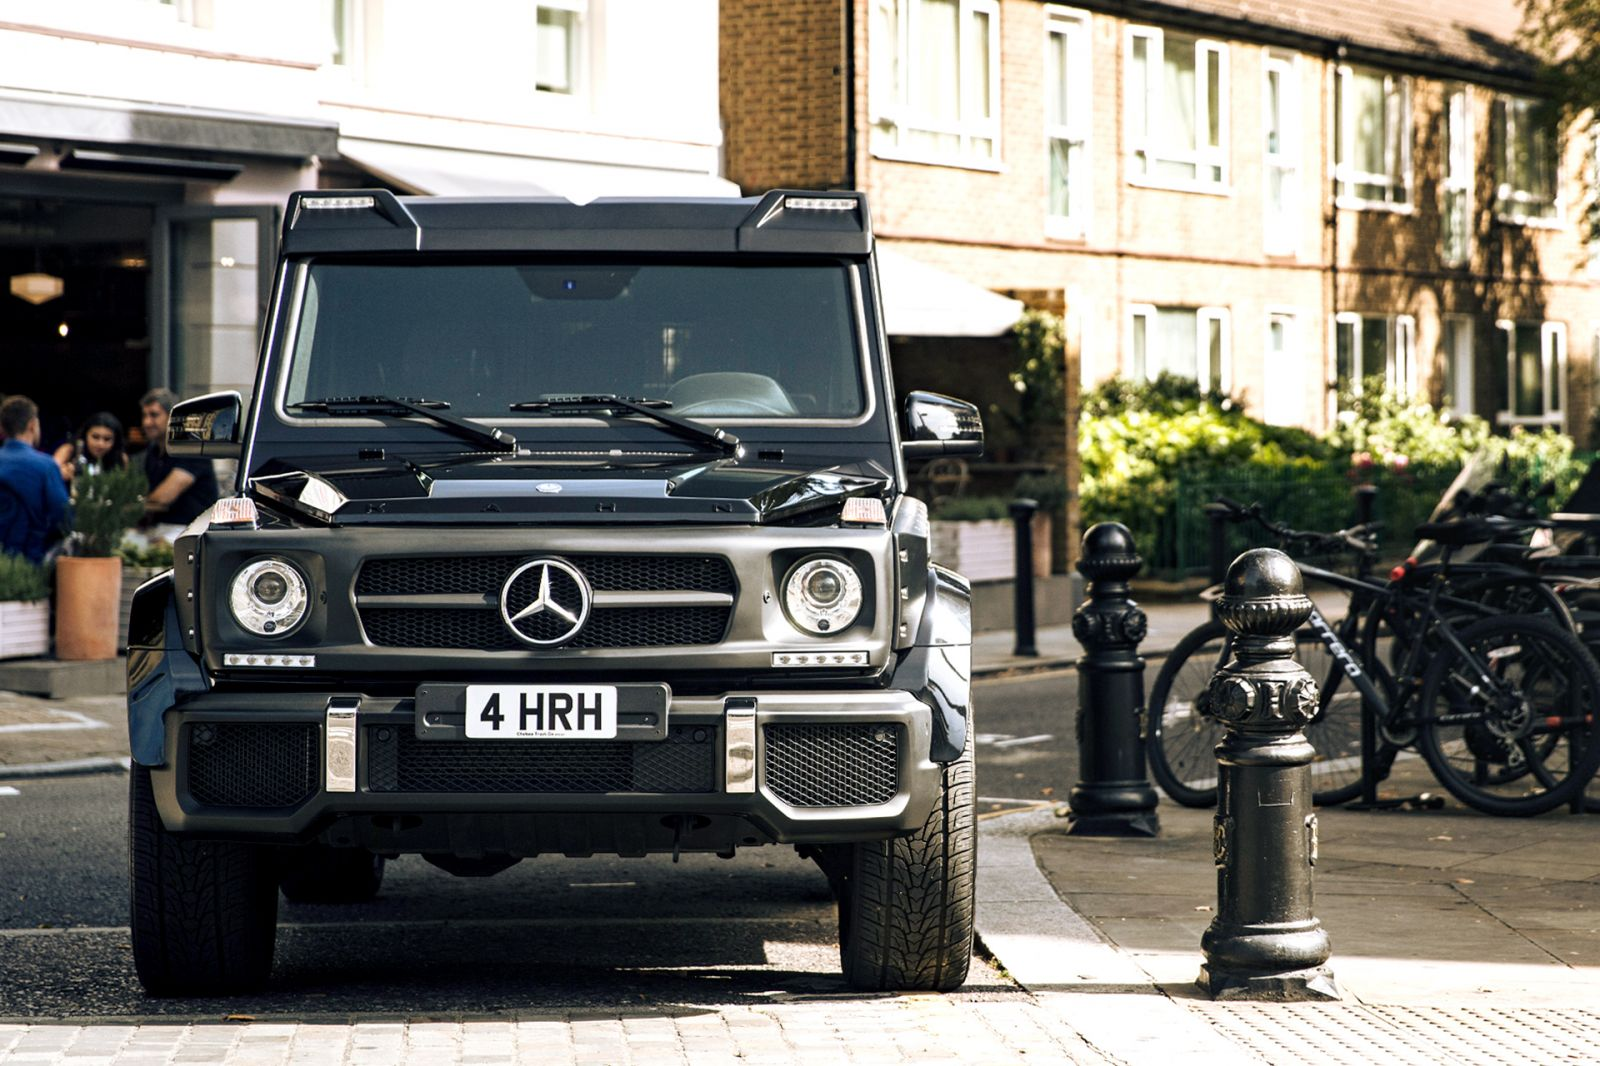 MERCEDES G CLASS / G63 AMG CTC - FRONT ROOF SHIELD